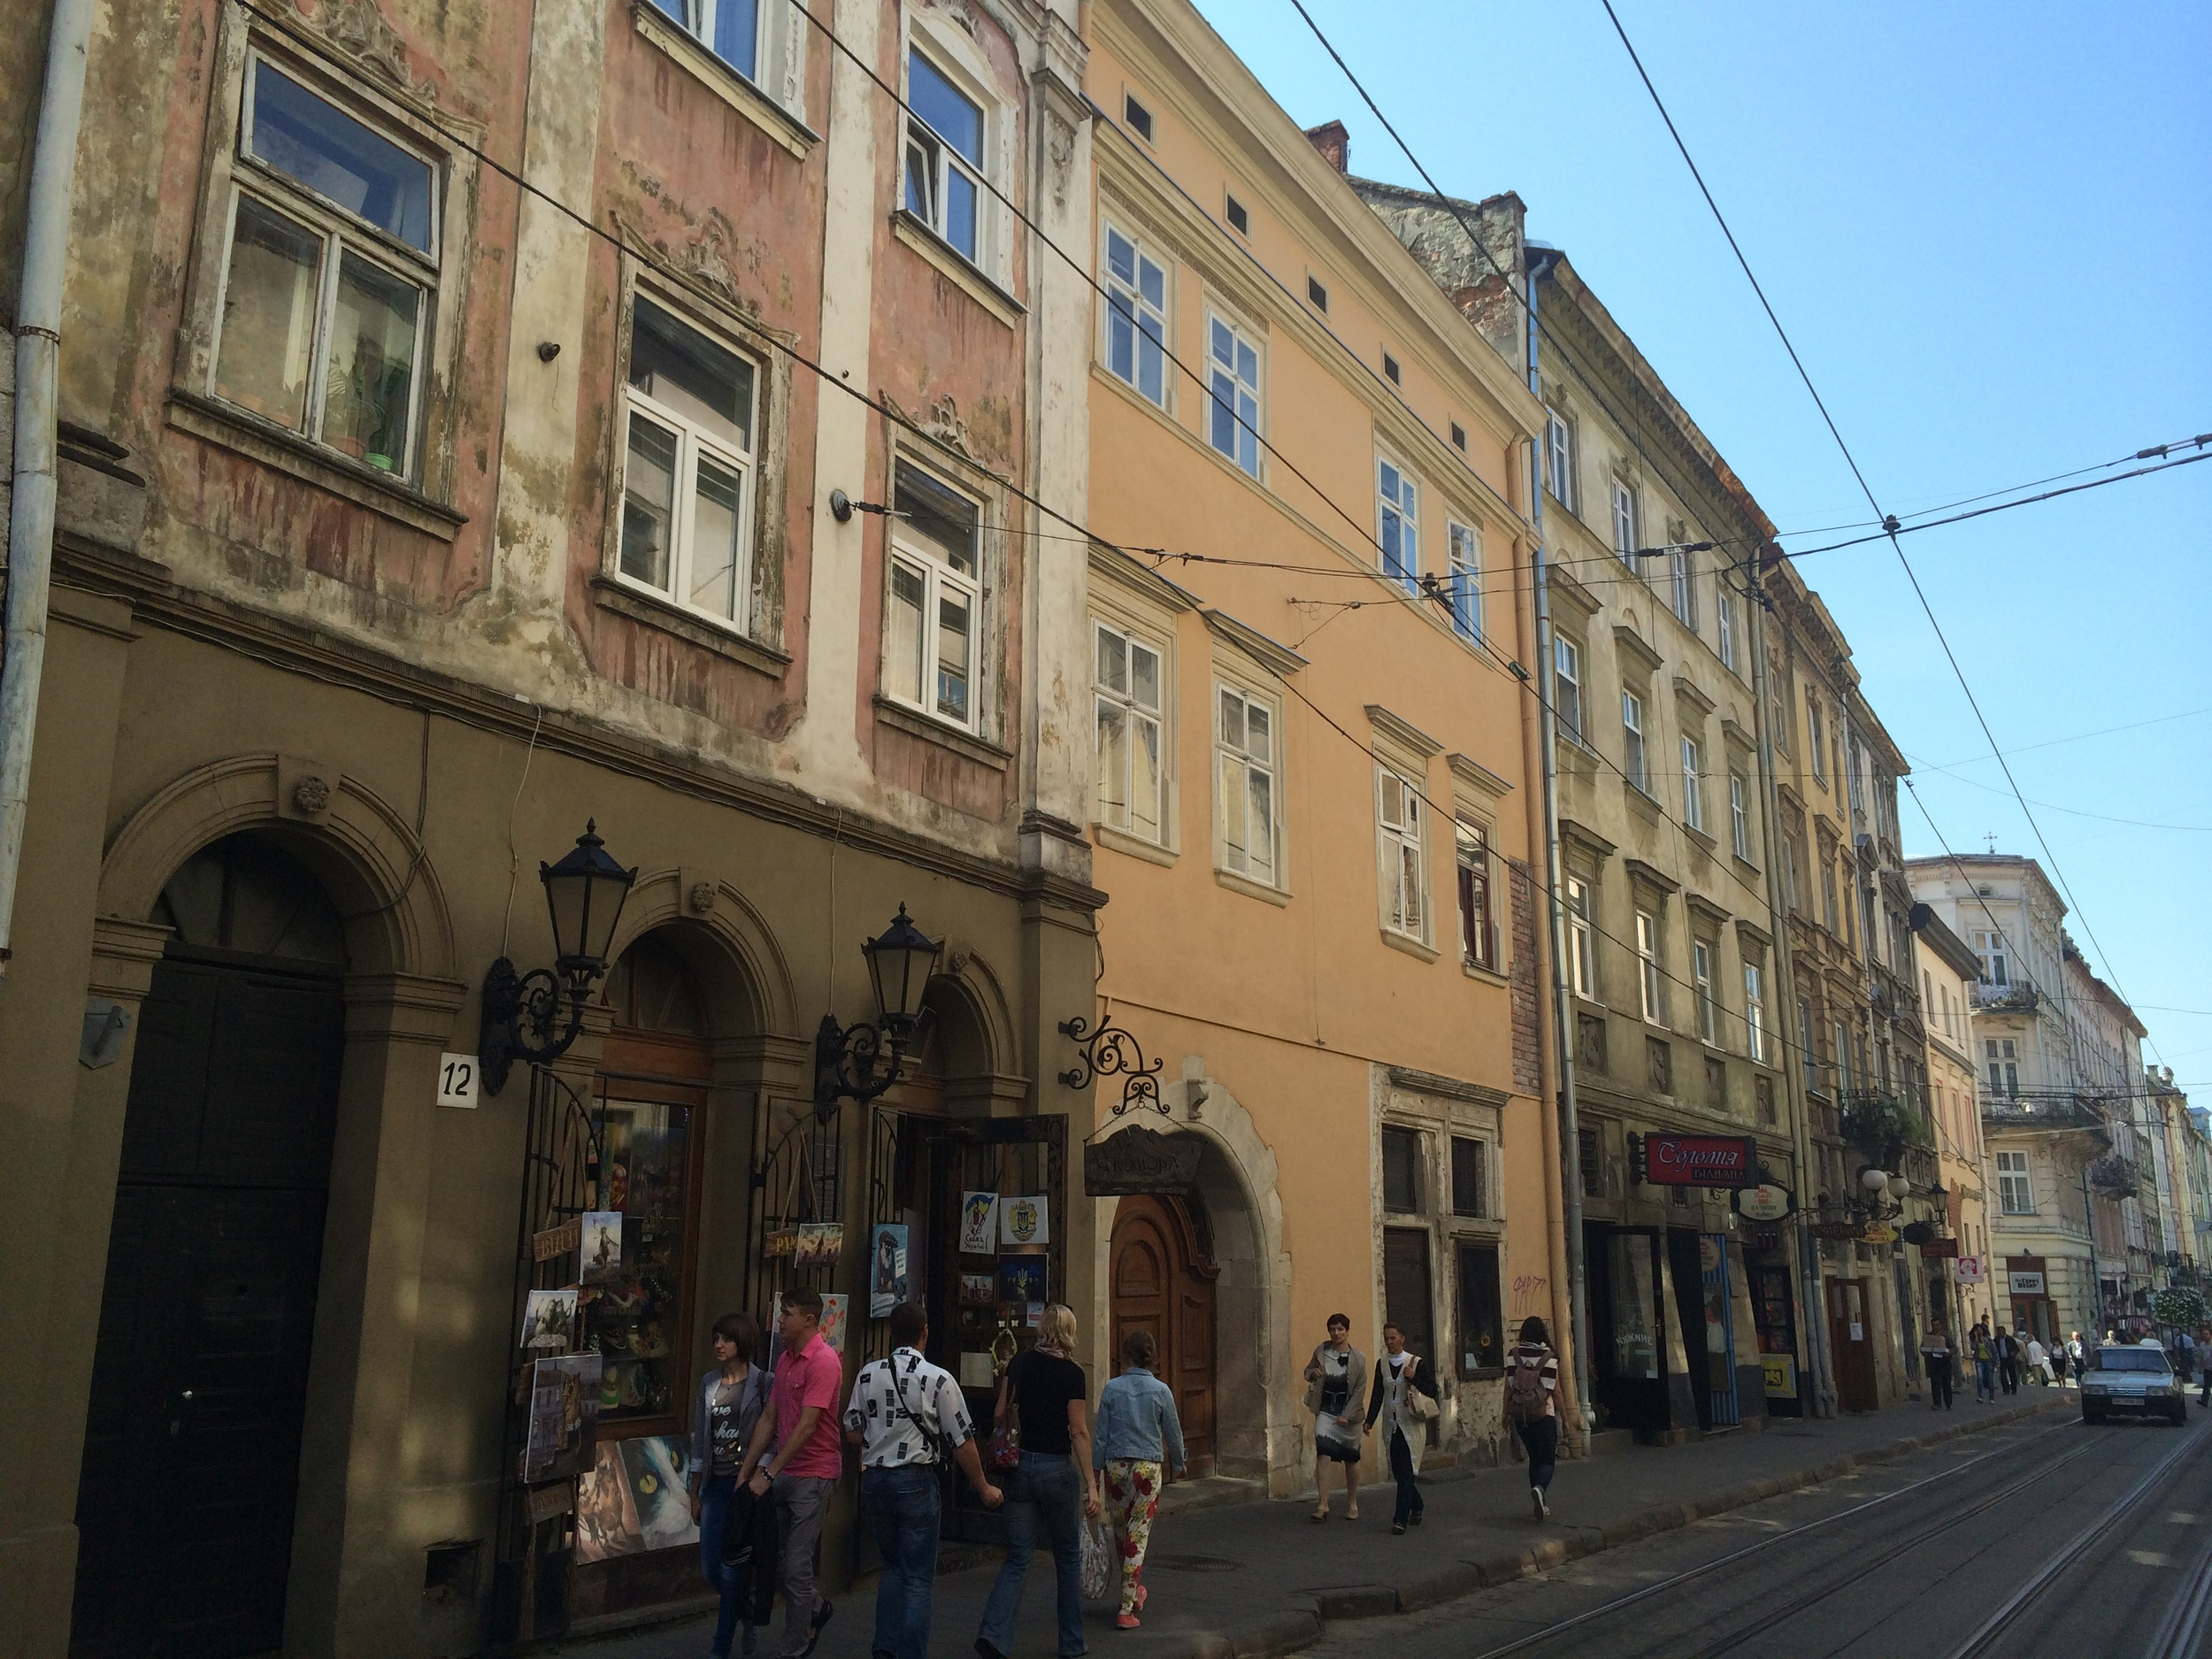 The streets of Lviv.